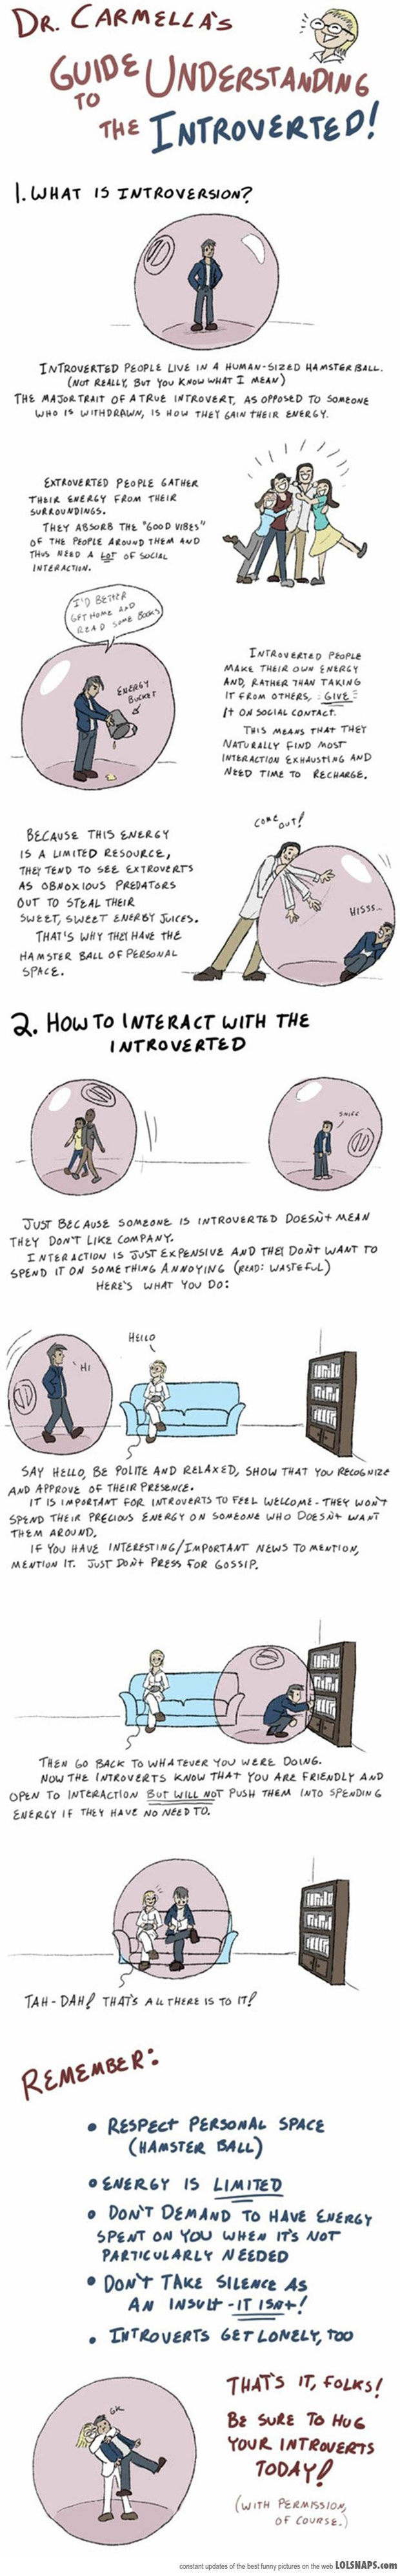 Guide to Understanding Introverts